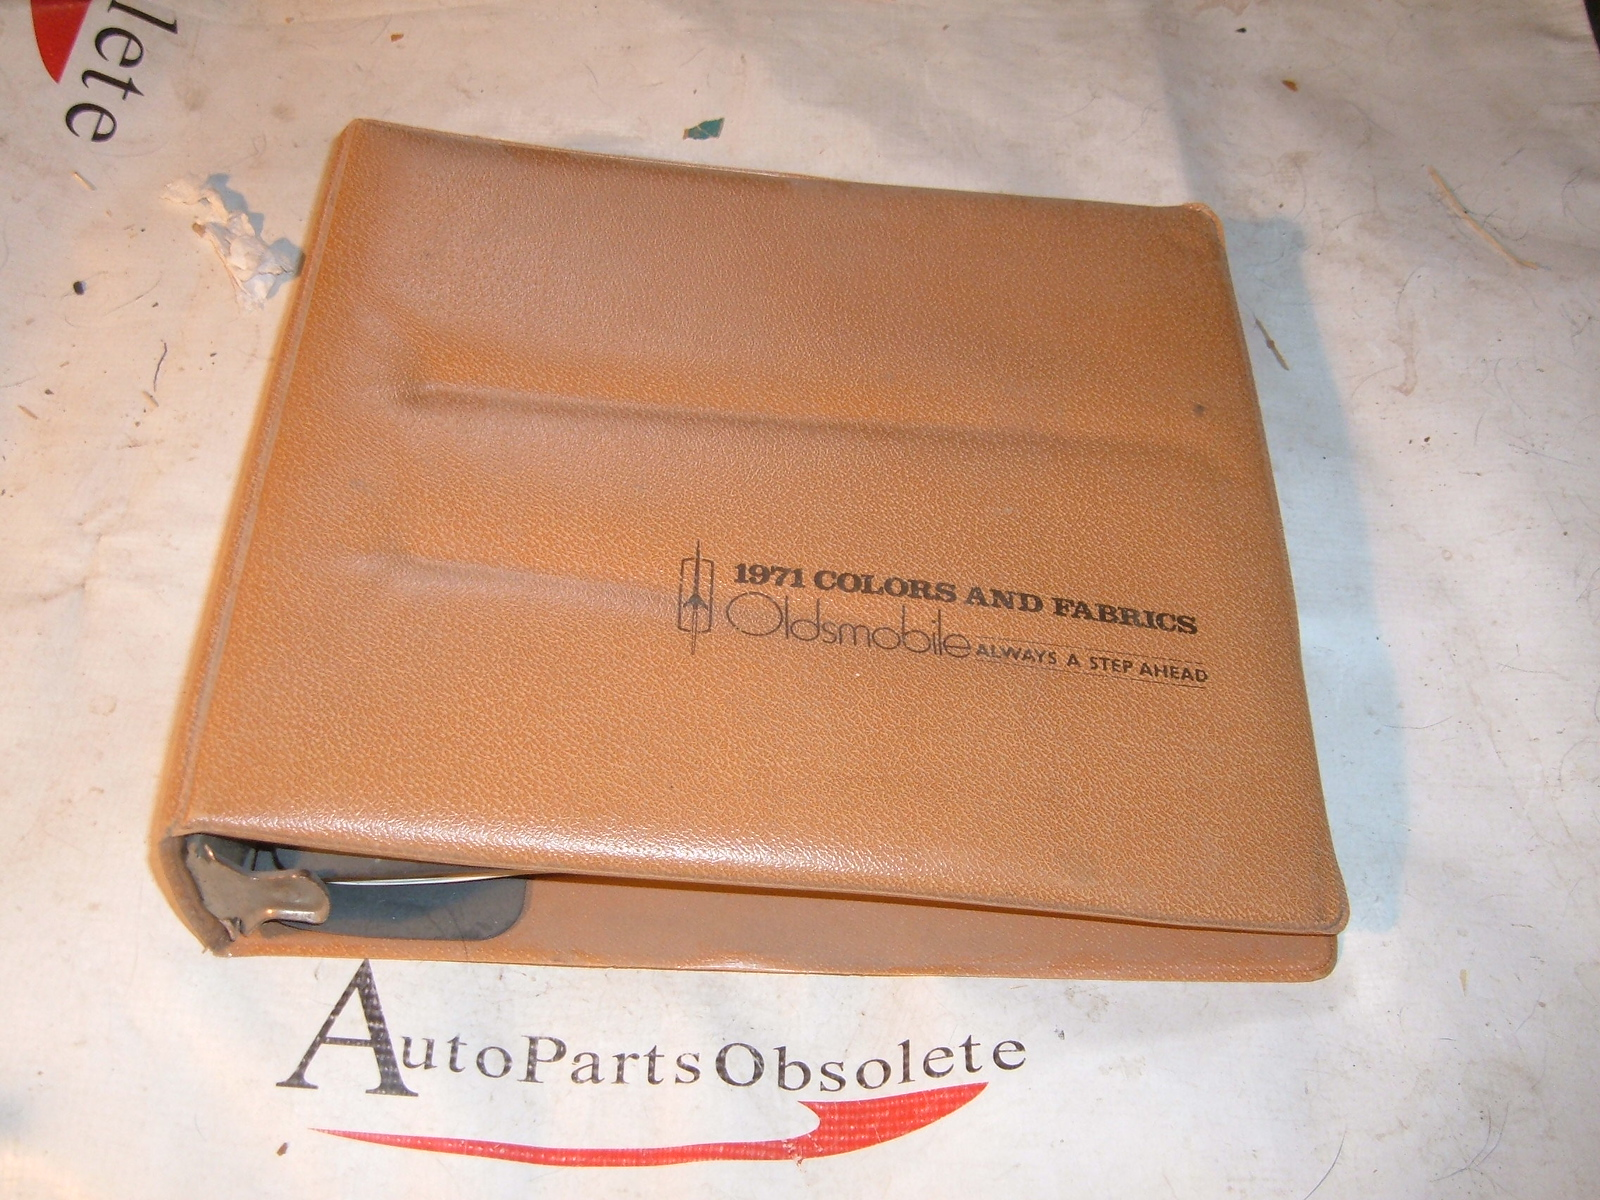 View Product1971 oldsmobile dealer fabric & color book original (a 71oldscolorbook)